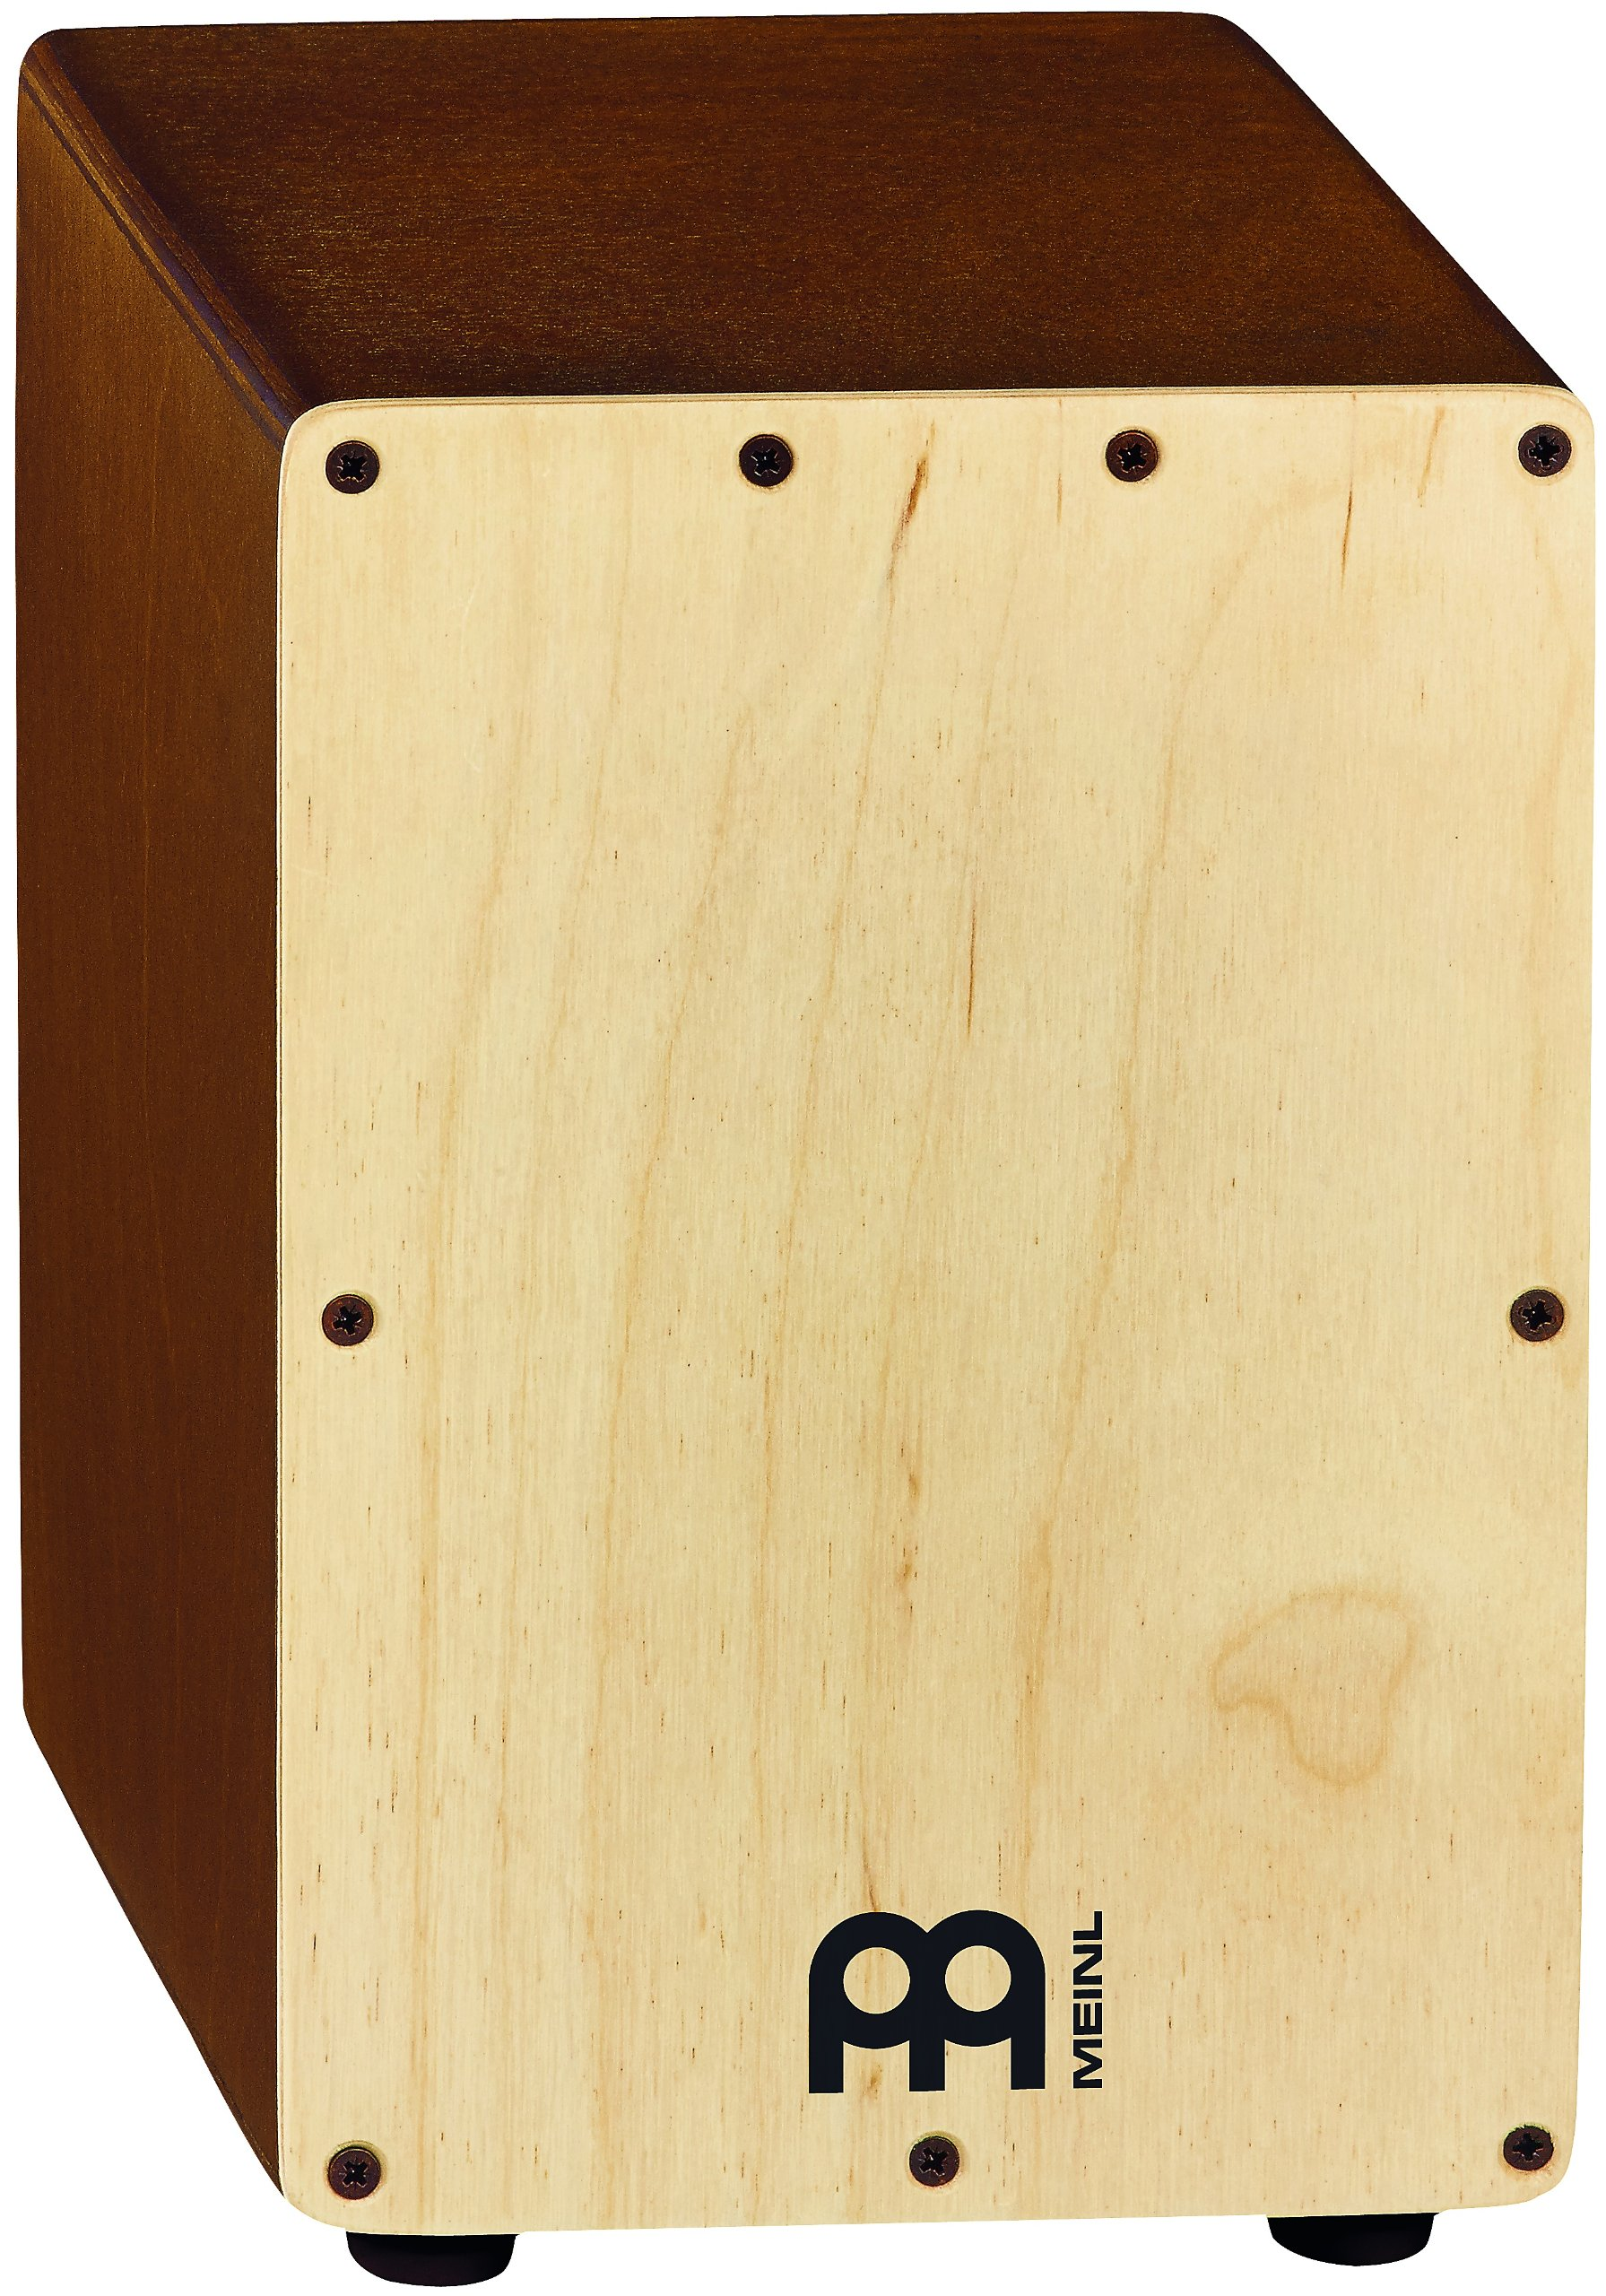 Meinl Percussion Mini Cajon Box Drum with Internal Snares - MADE IN EUROPE - Baltic Birch Wood, 2-YEAR WARRANTY, Natural (SCAJ1LB-NT) by Meinl Percussion